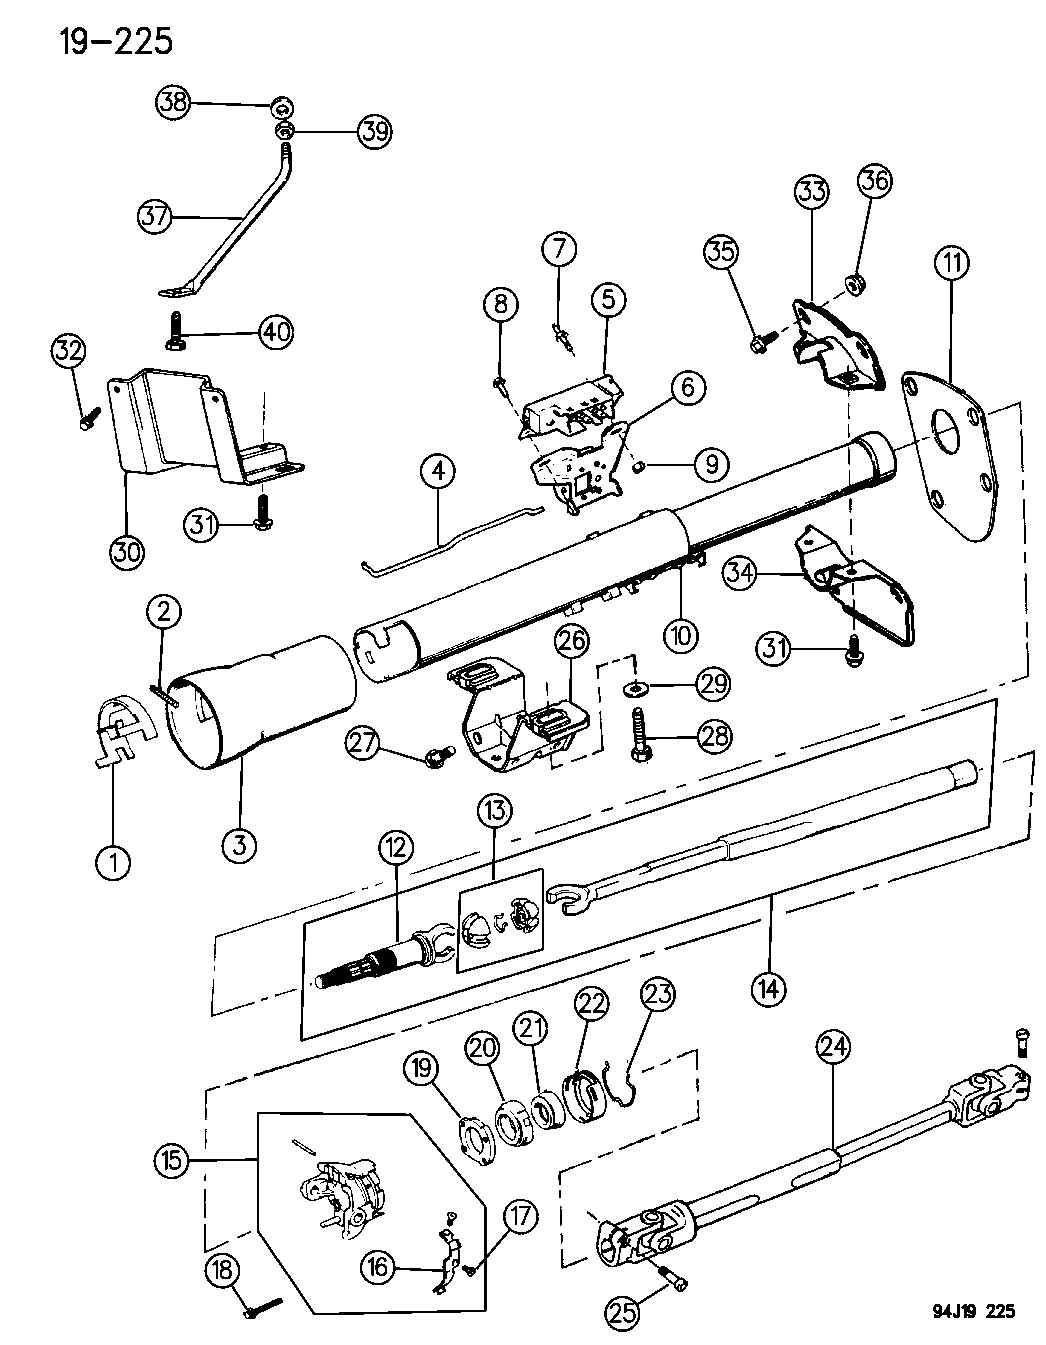 Service manual [Changeing Gear Shift Assembly 2004 Jeep